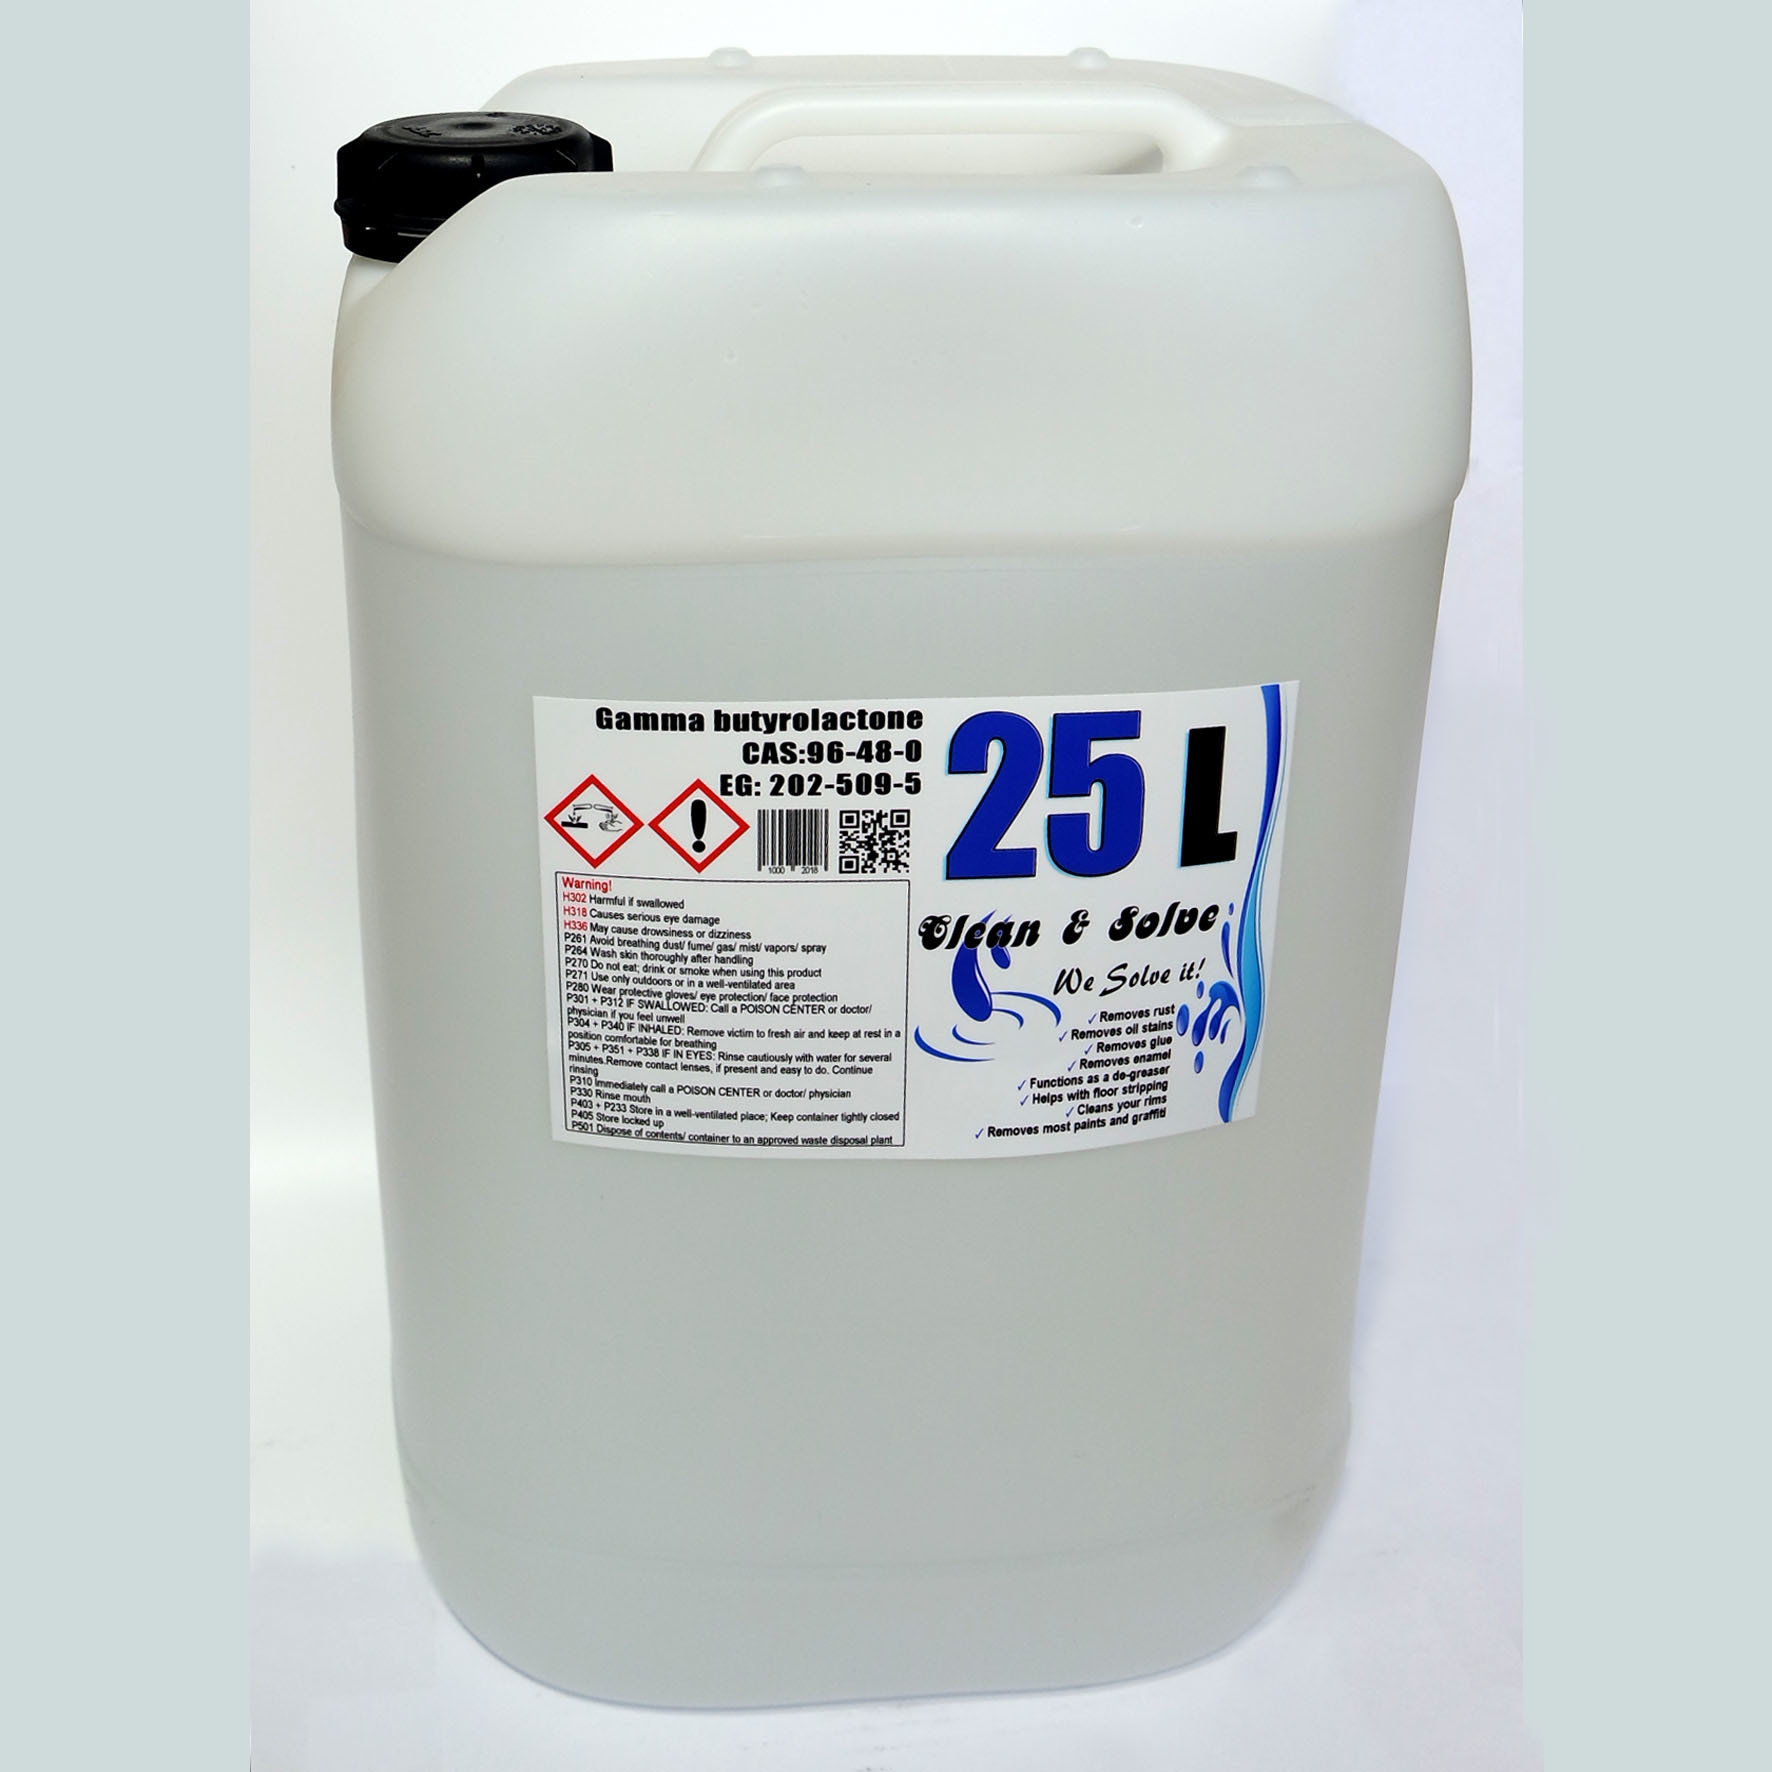 Industrial Cleaner 25.000 ml Technical Grade Canister 00025 HS Code 29322020